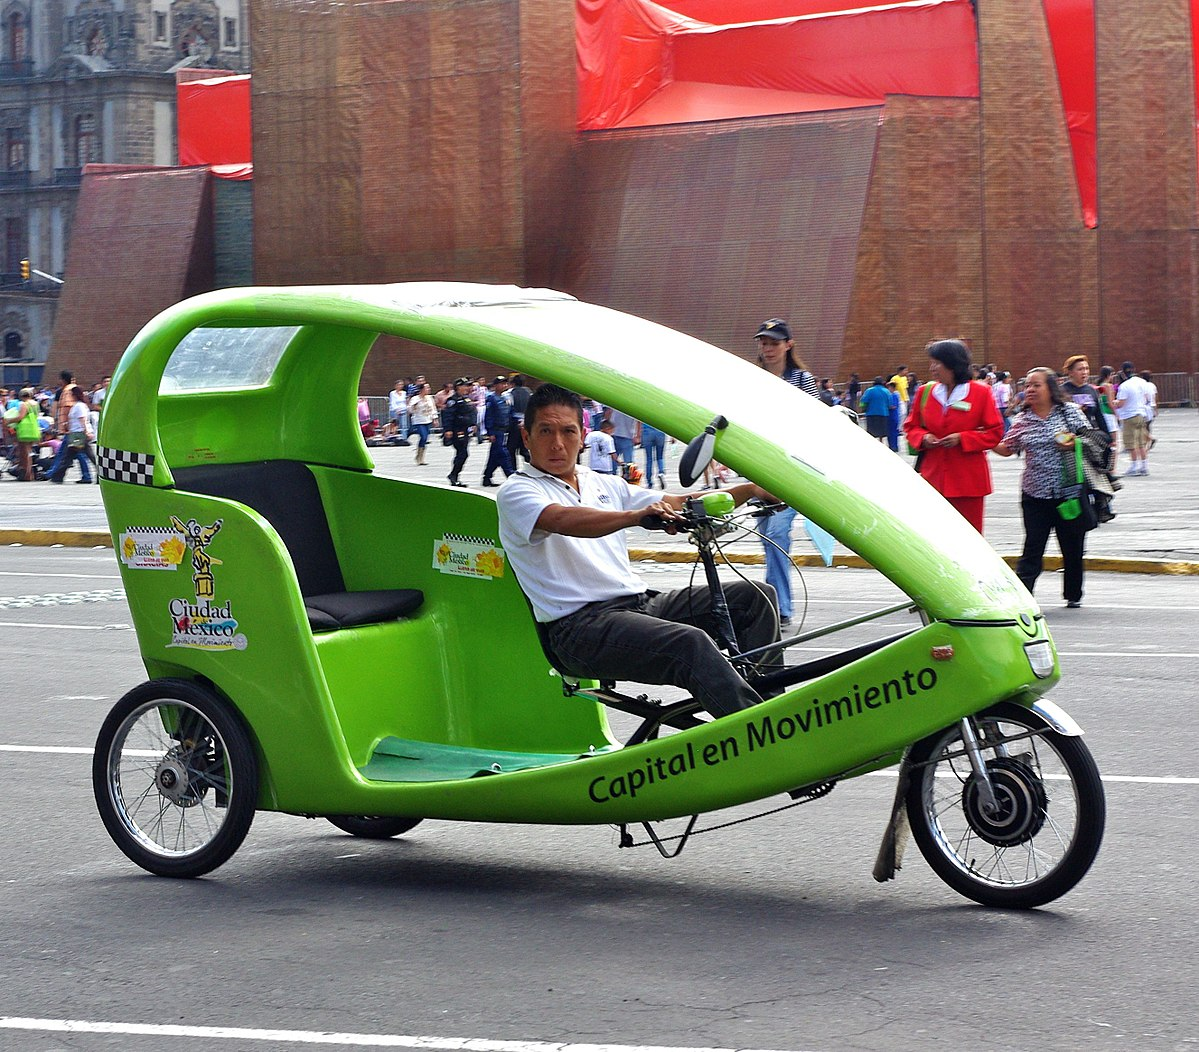 4 Wheel Bicycle Car >> Cycle rickshaw - Wikipedia